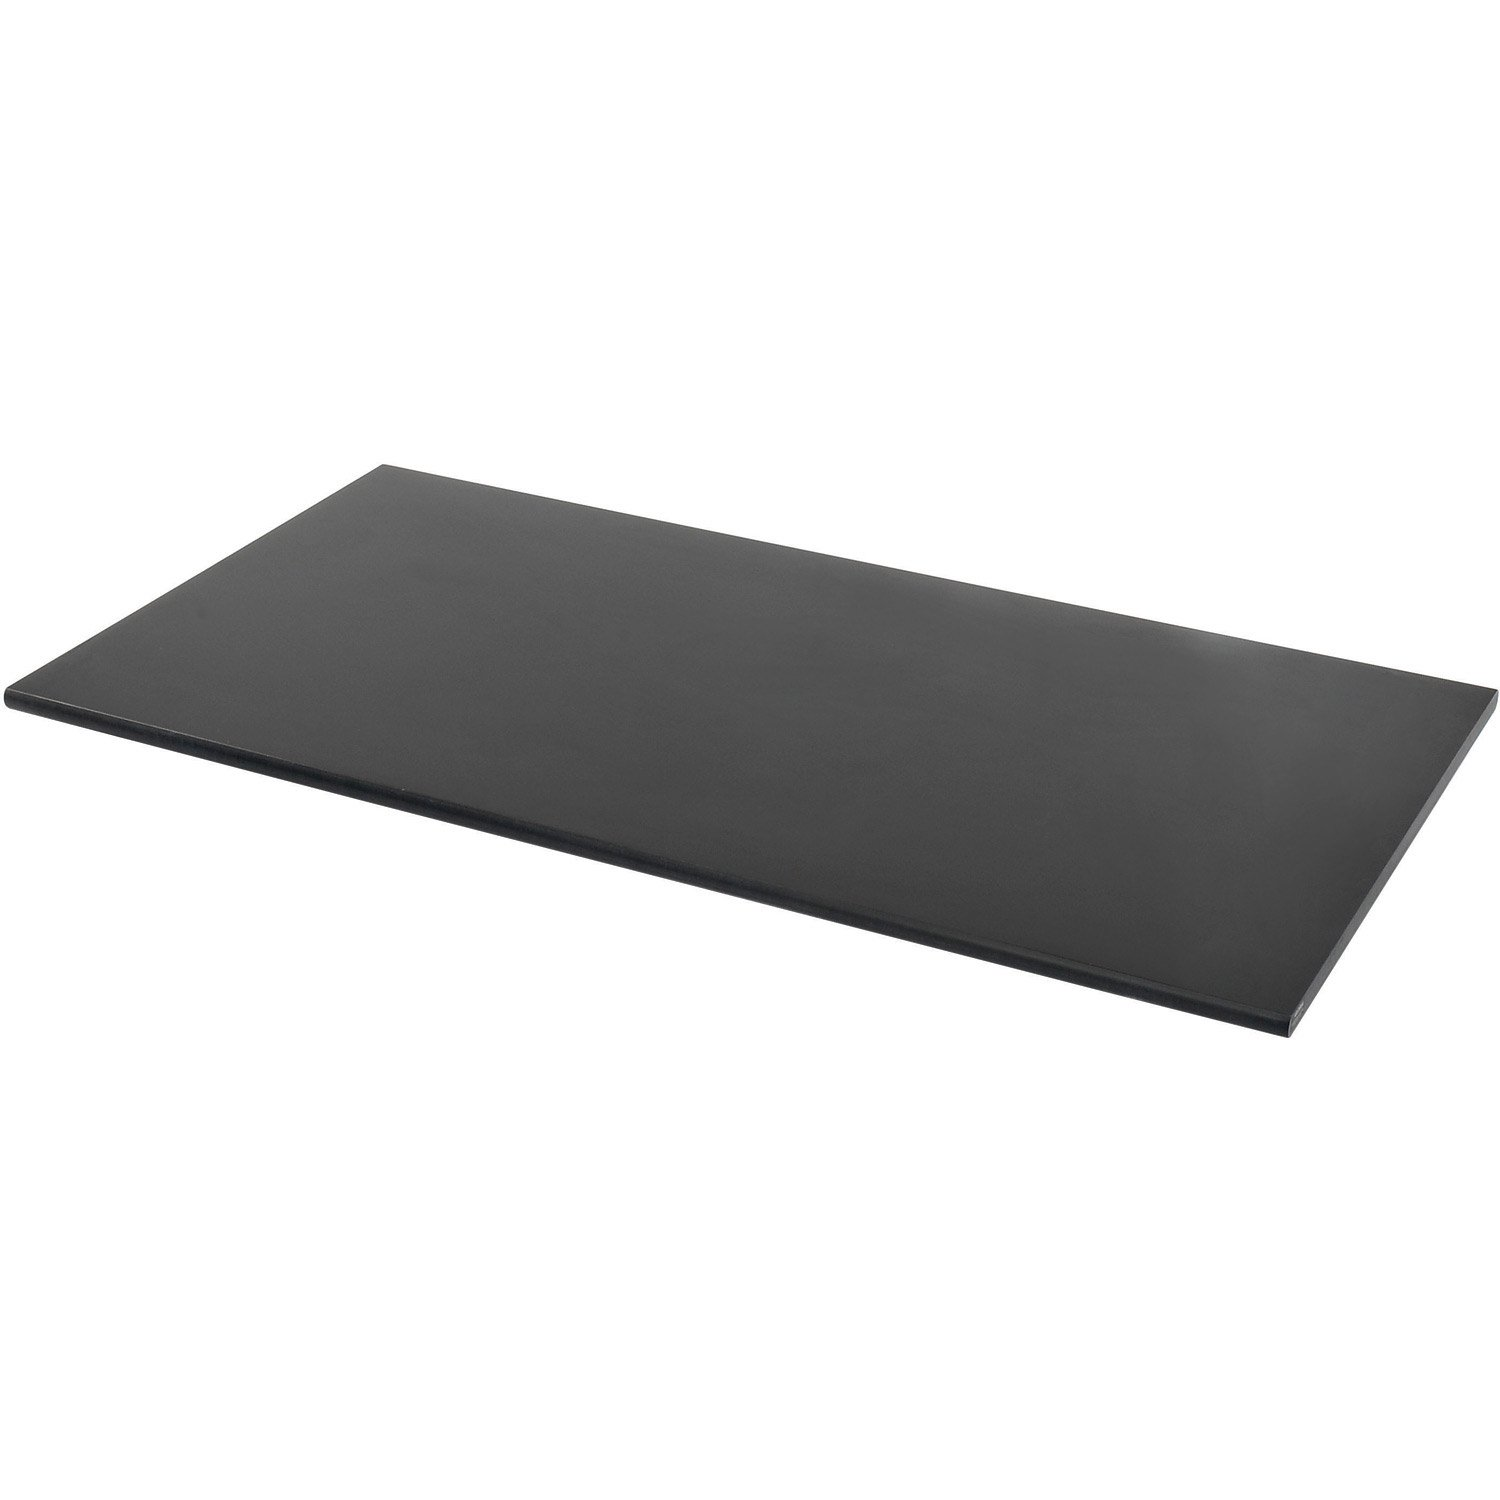 Phenolic Resin Safety Edge Bench Top Size: 1.63'' H x 60'' W x 30'' D